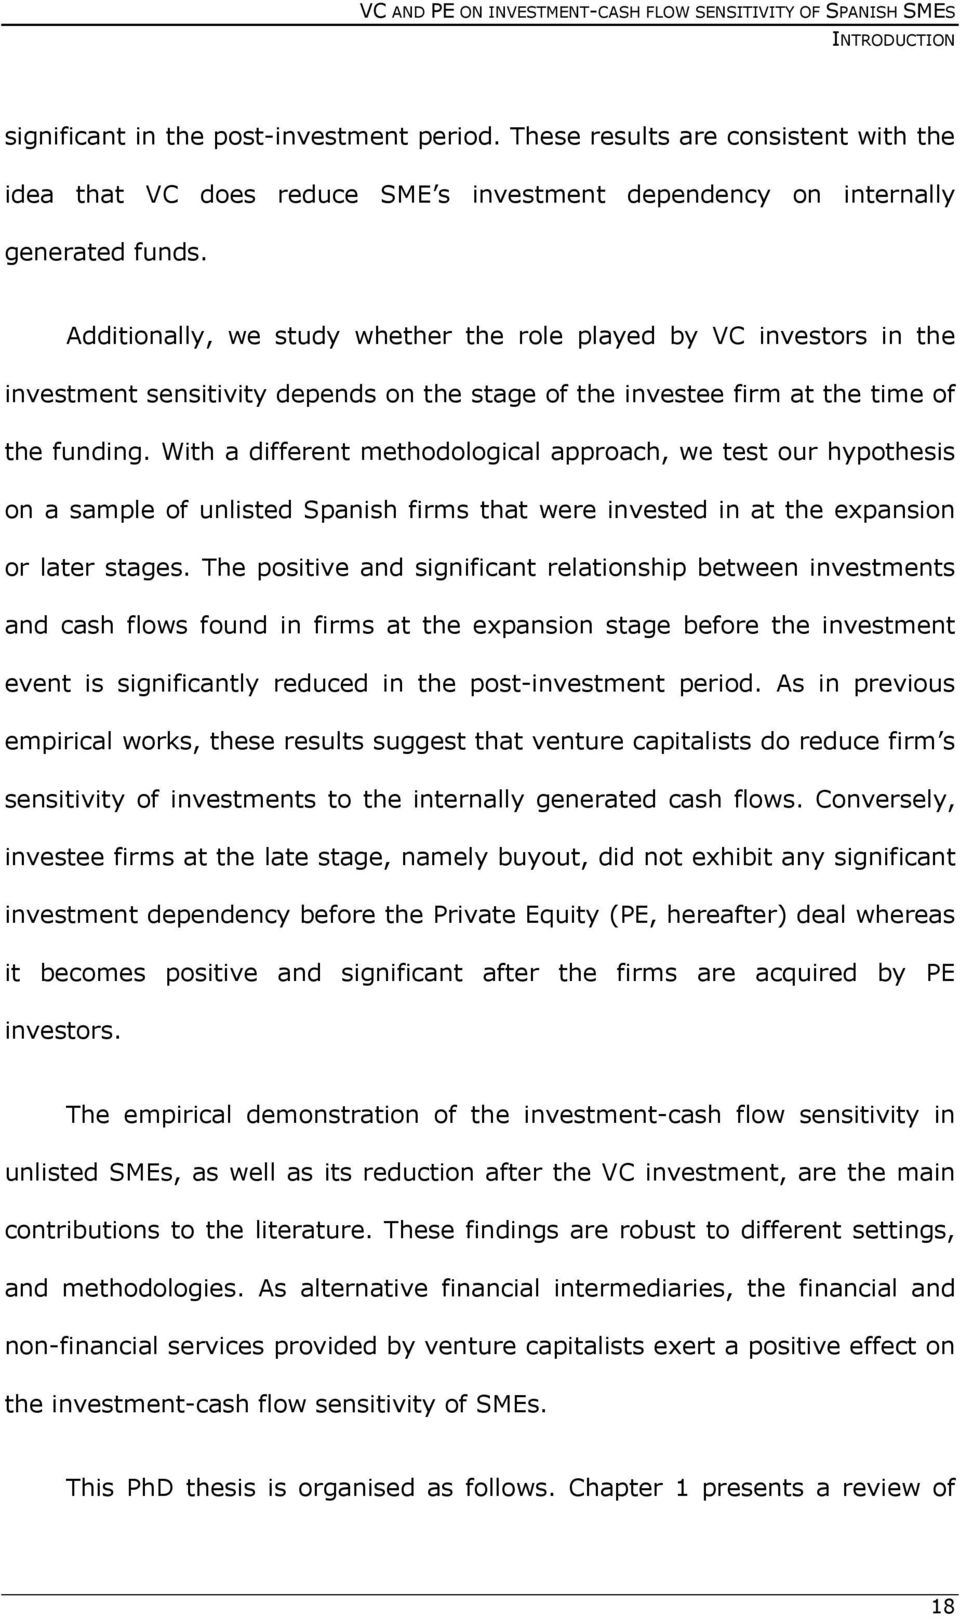 With a different methodological approach, we test our hypothesis on a sample of unlisted Spanish firms that were invested in at the expansion or later stages.